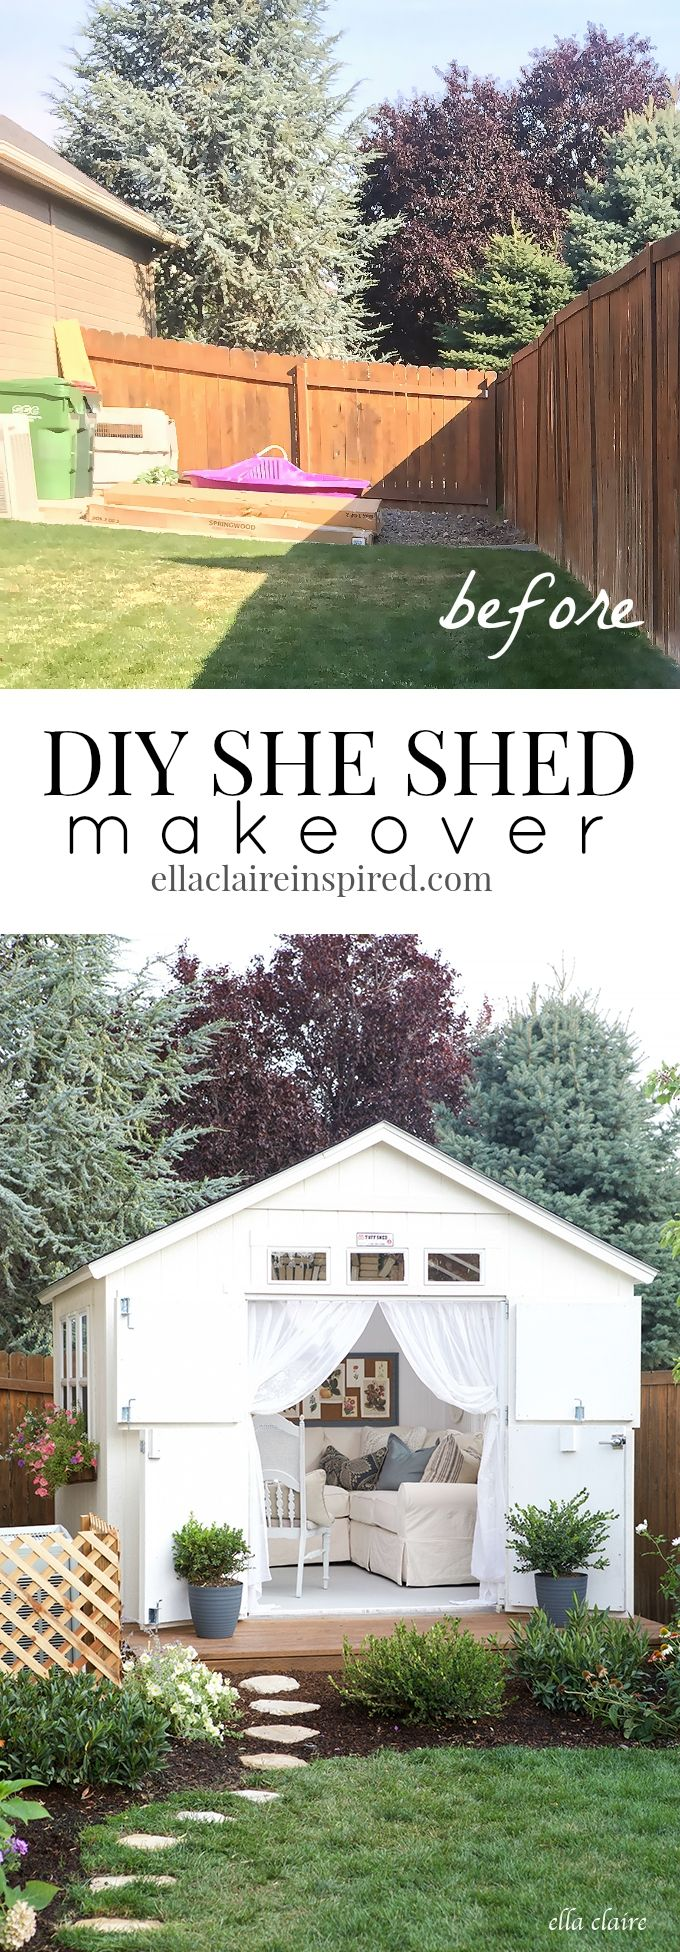 So many fun details and projects with this DIY She Shed makeover!